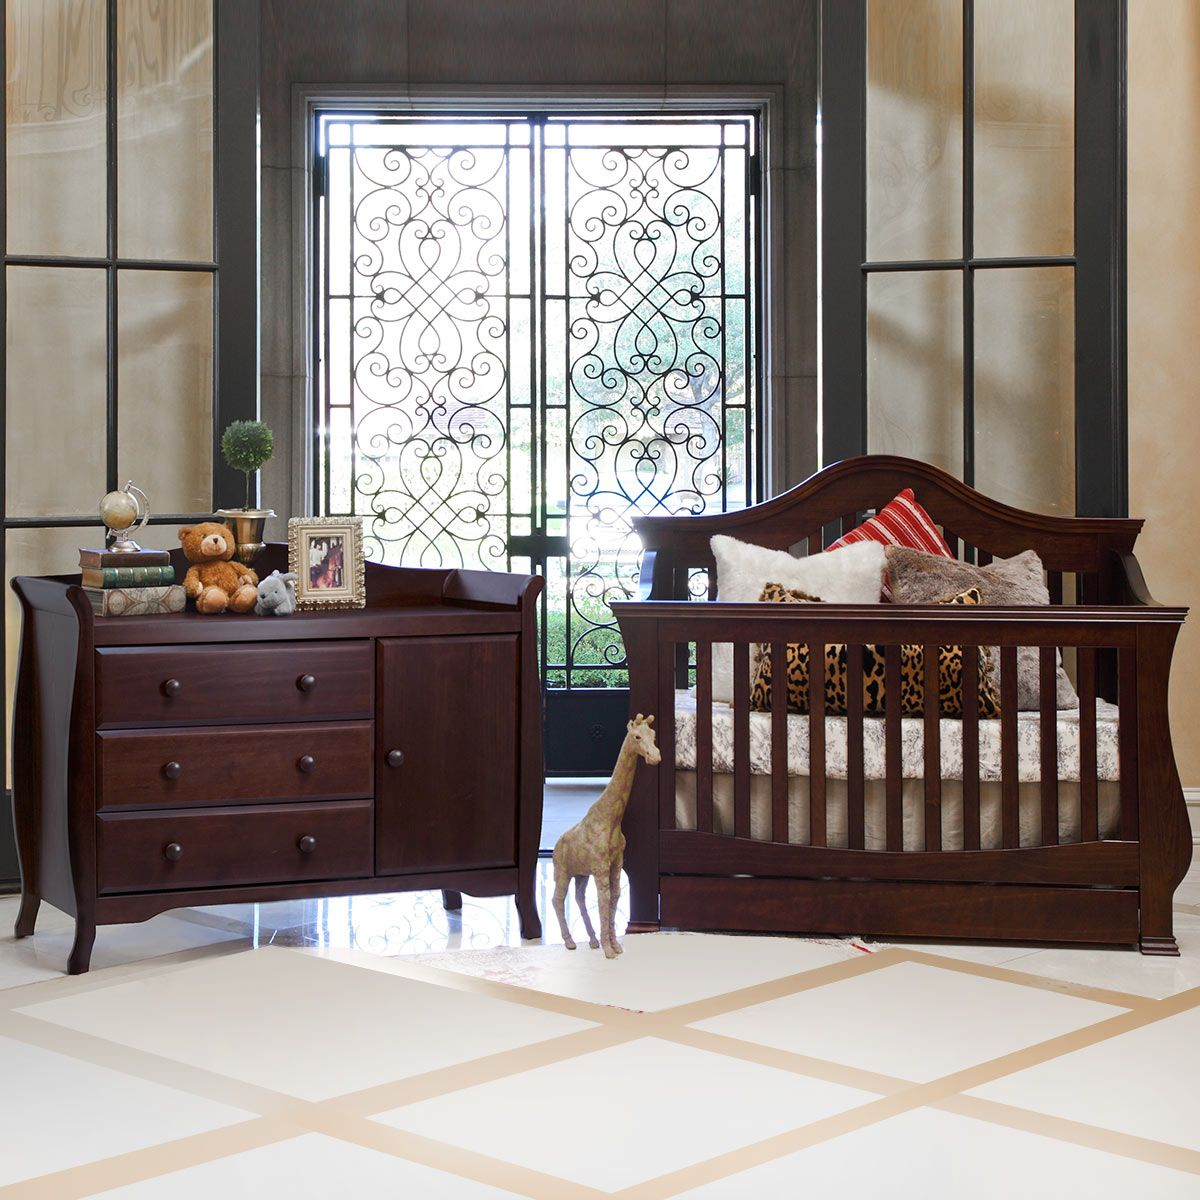 Baby cribs baby r us - Million Dollar Baby 2 Piece Nursery Set Ashbury 4 In 1 Sleigh Convertible